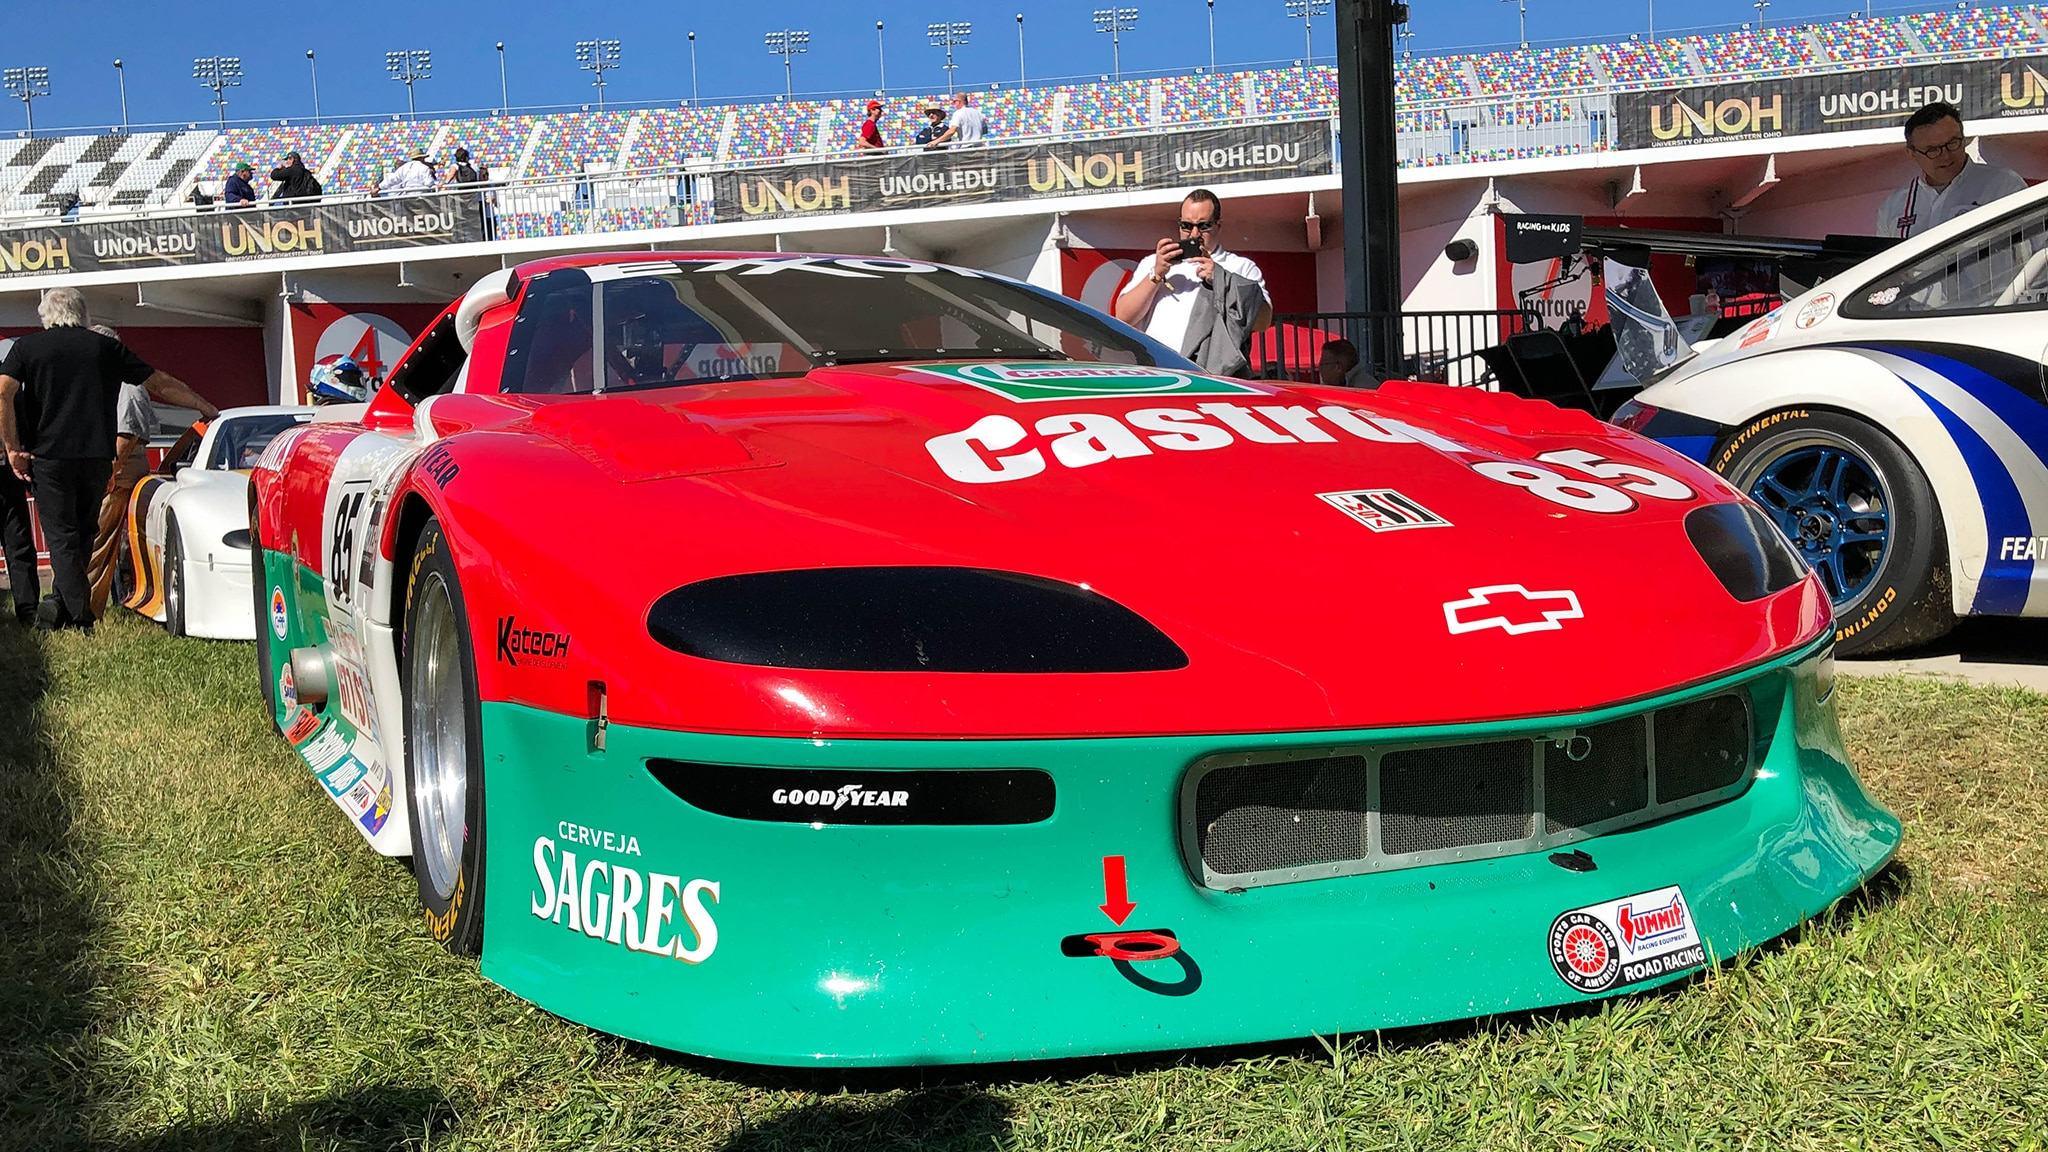 Classic Race Car Pictures From the 24 Hours of Daytona - Automobile